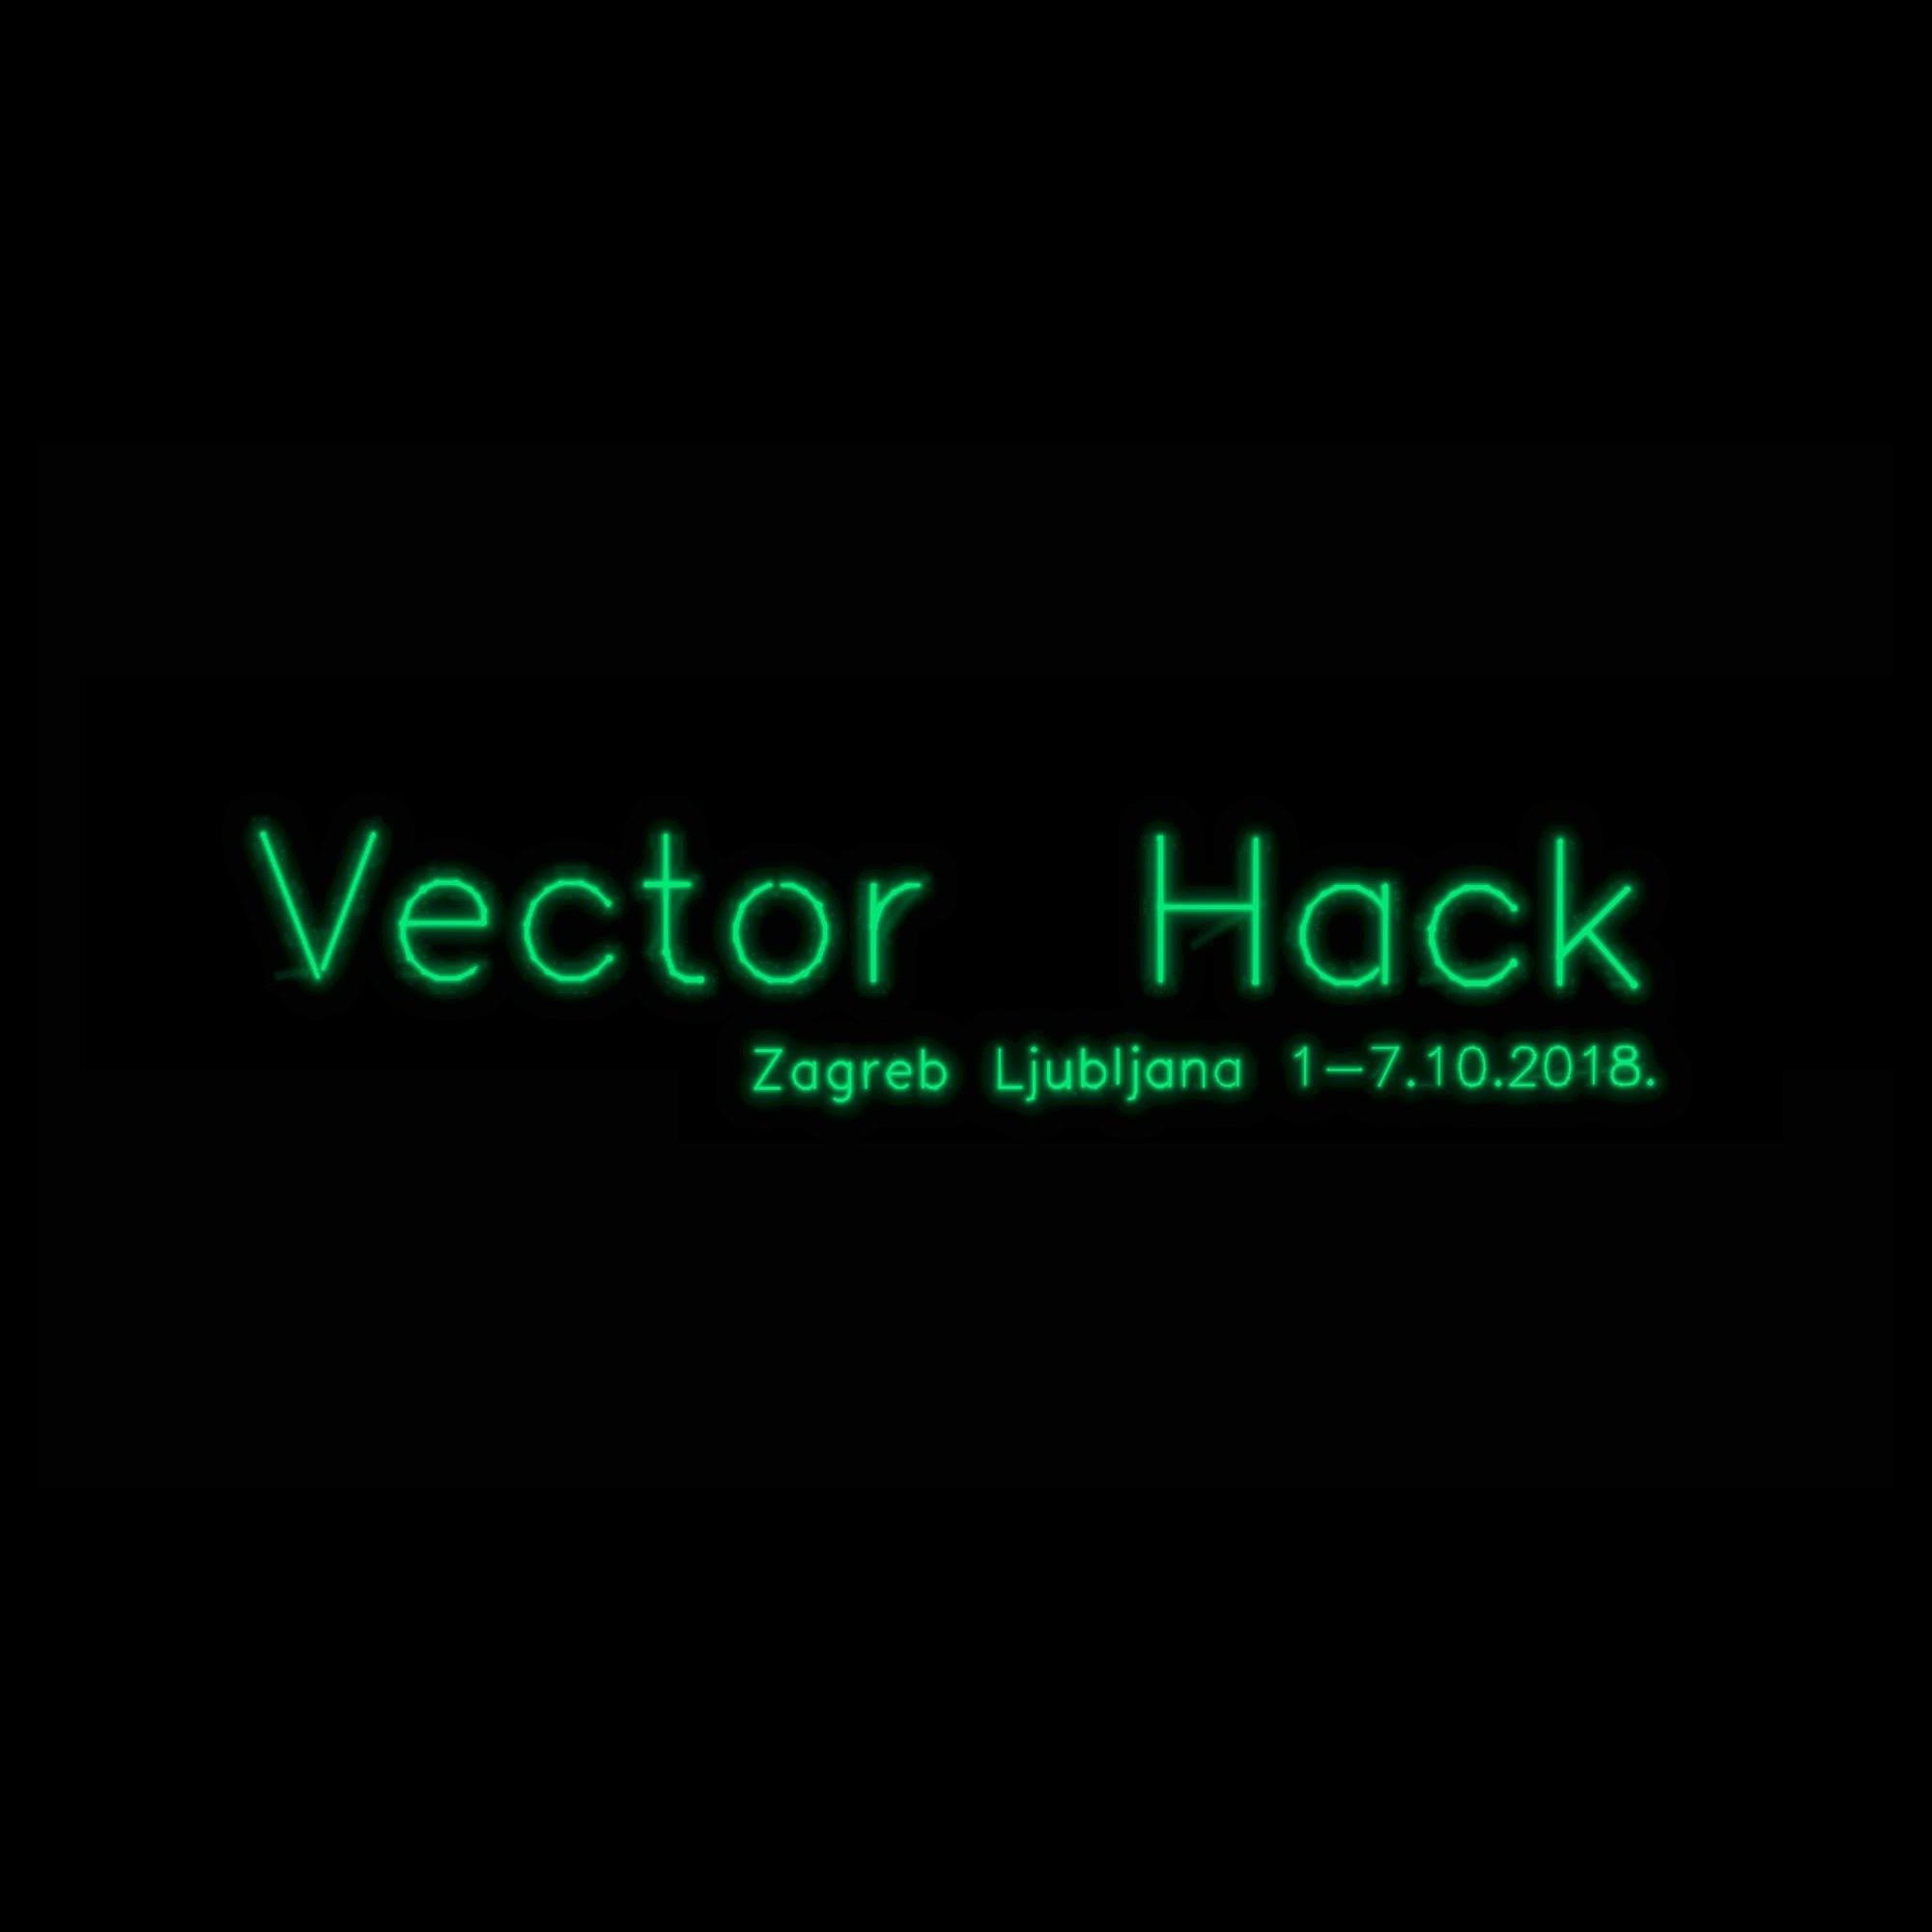 2000x2000 Vector Hack 2018 First Announcement Radiona